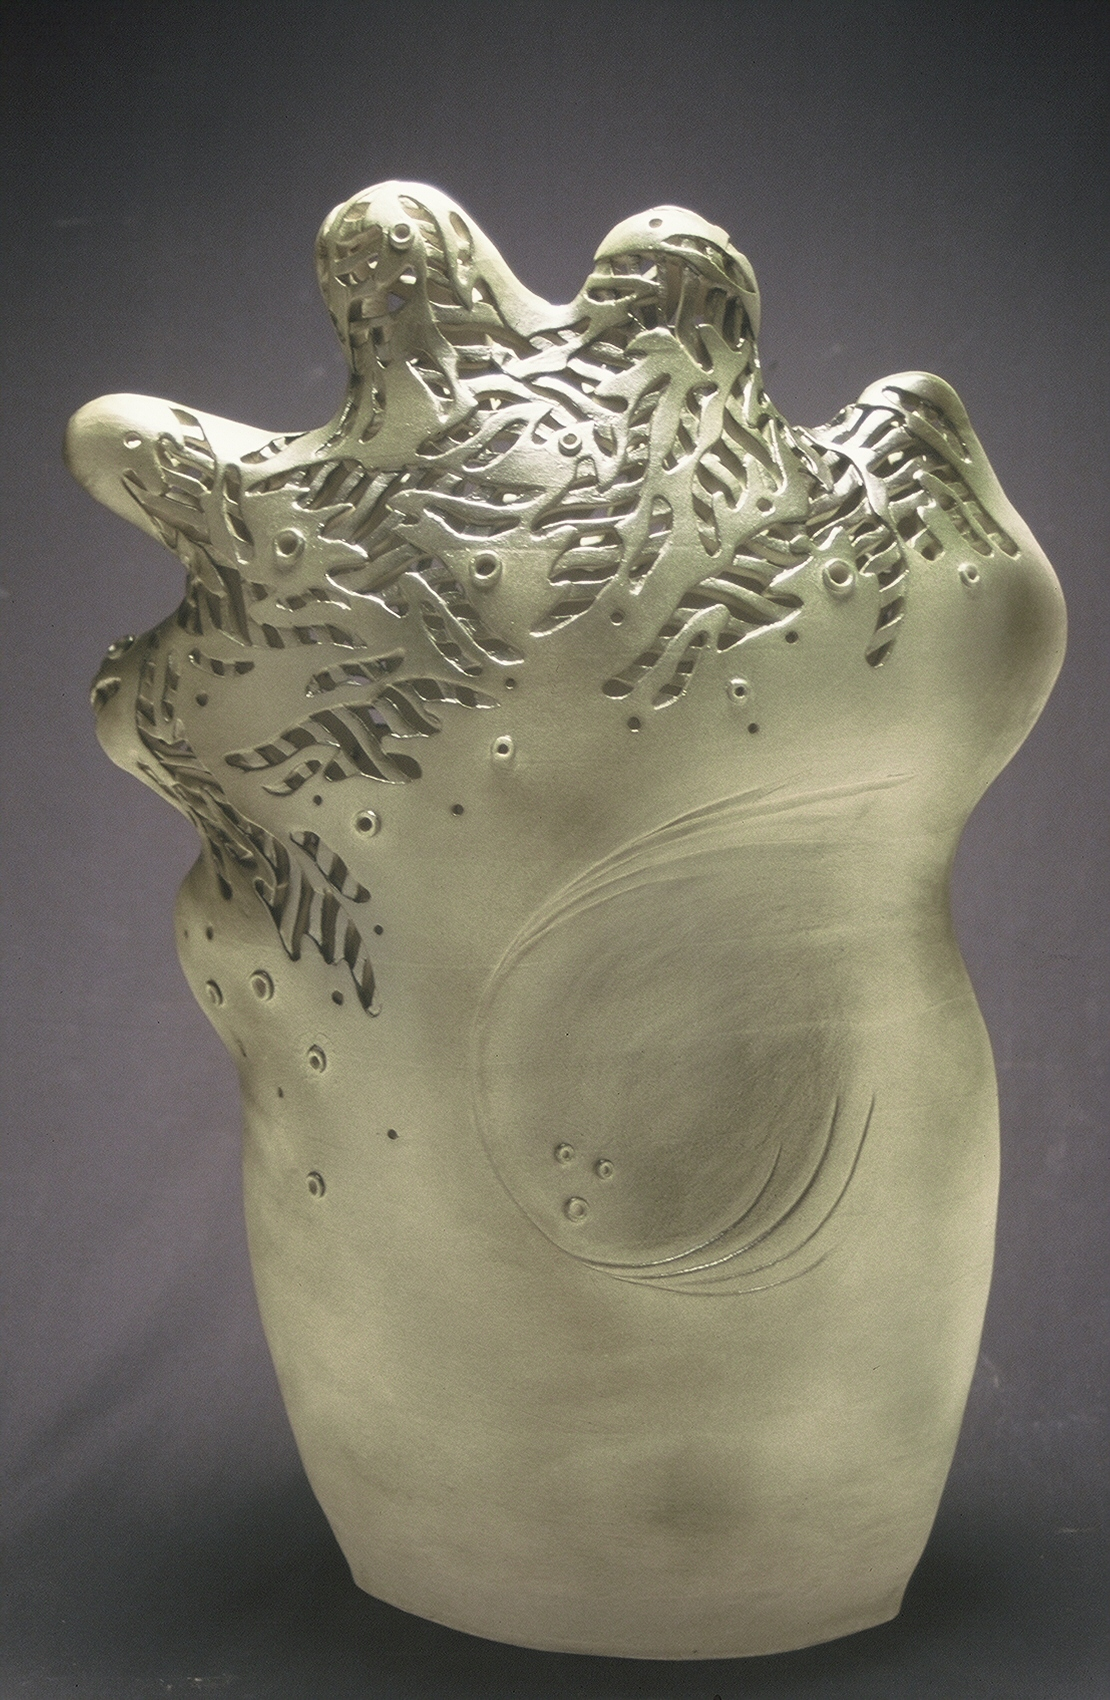 Ceramic Artwork